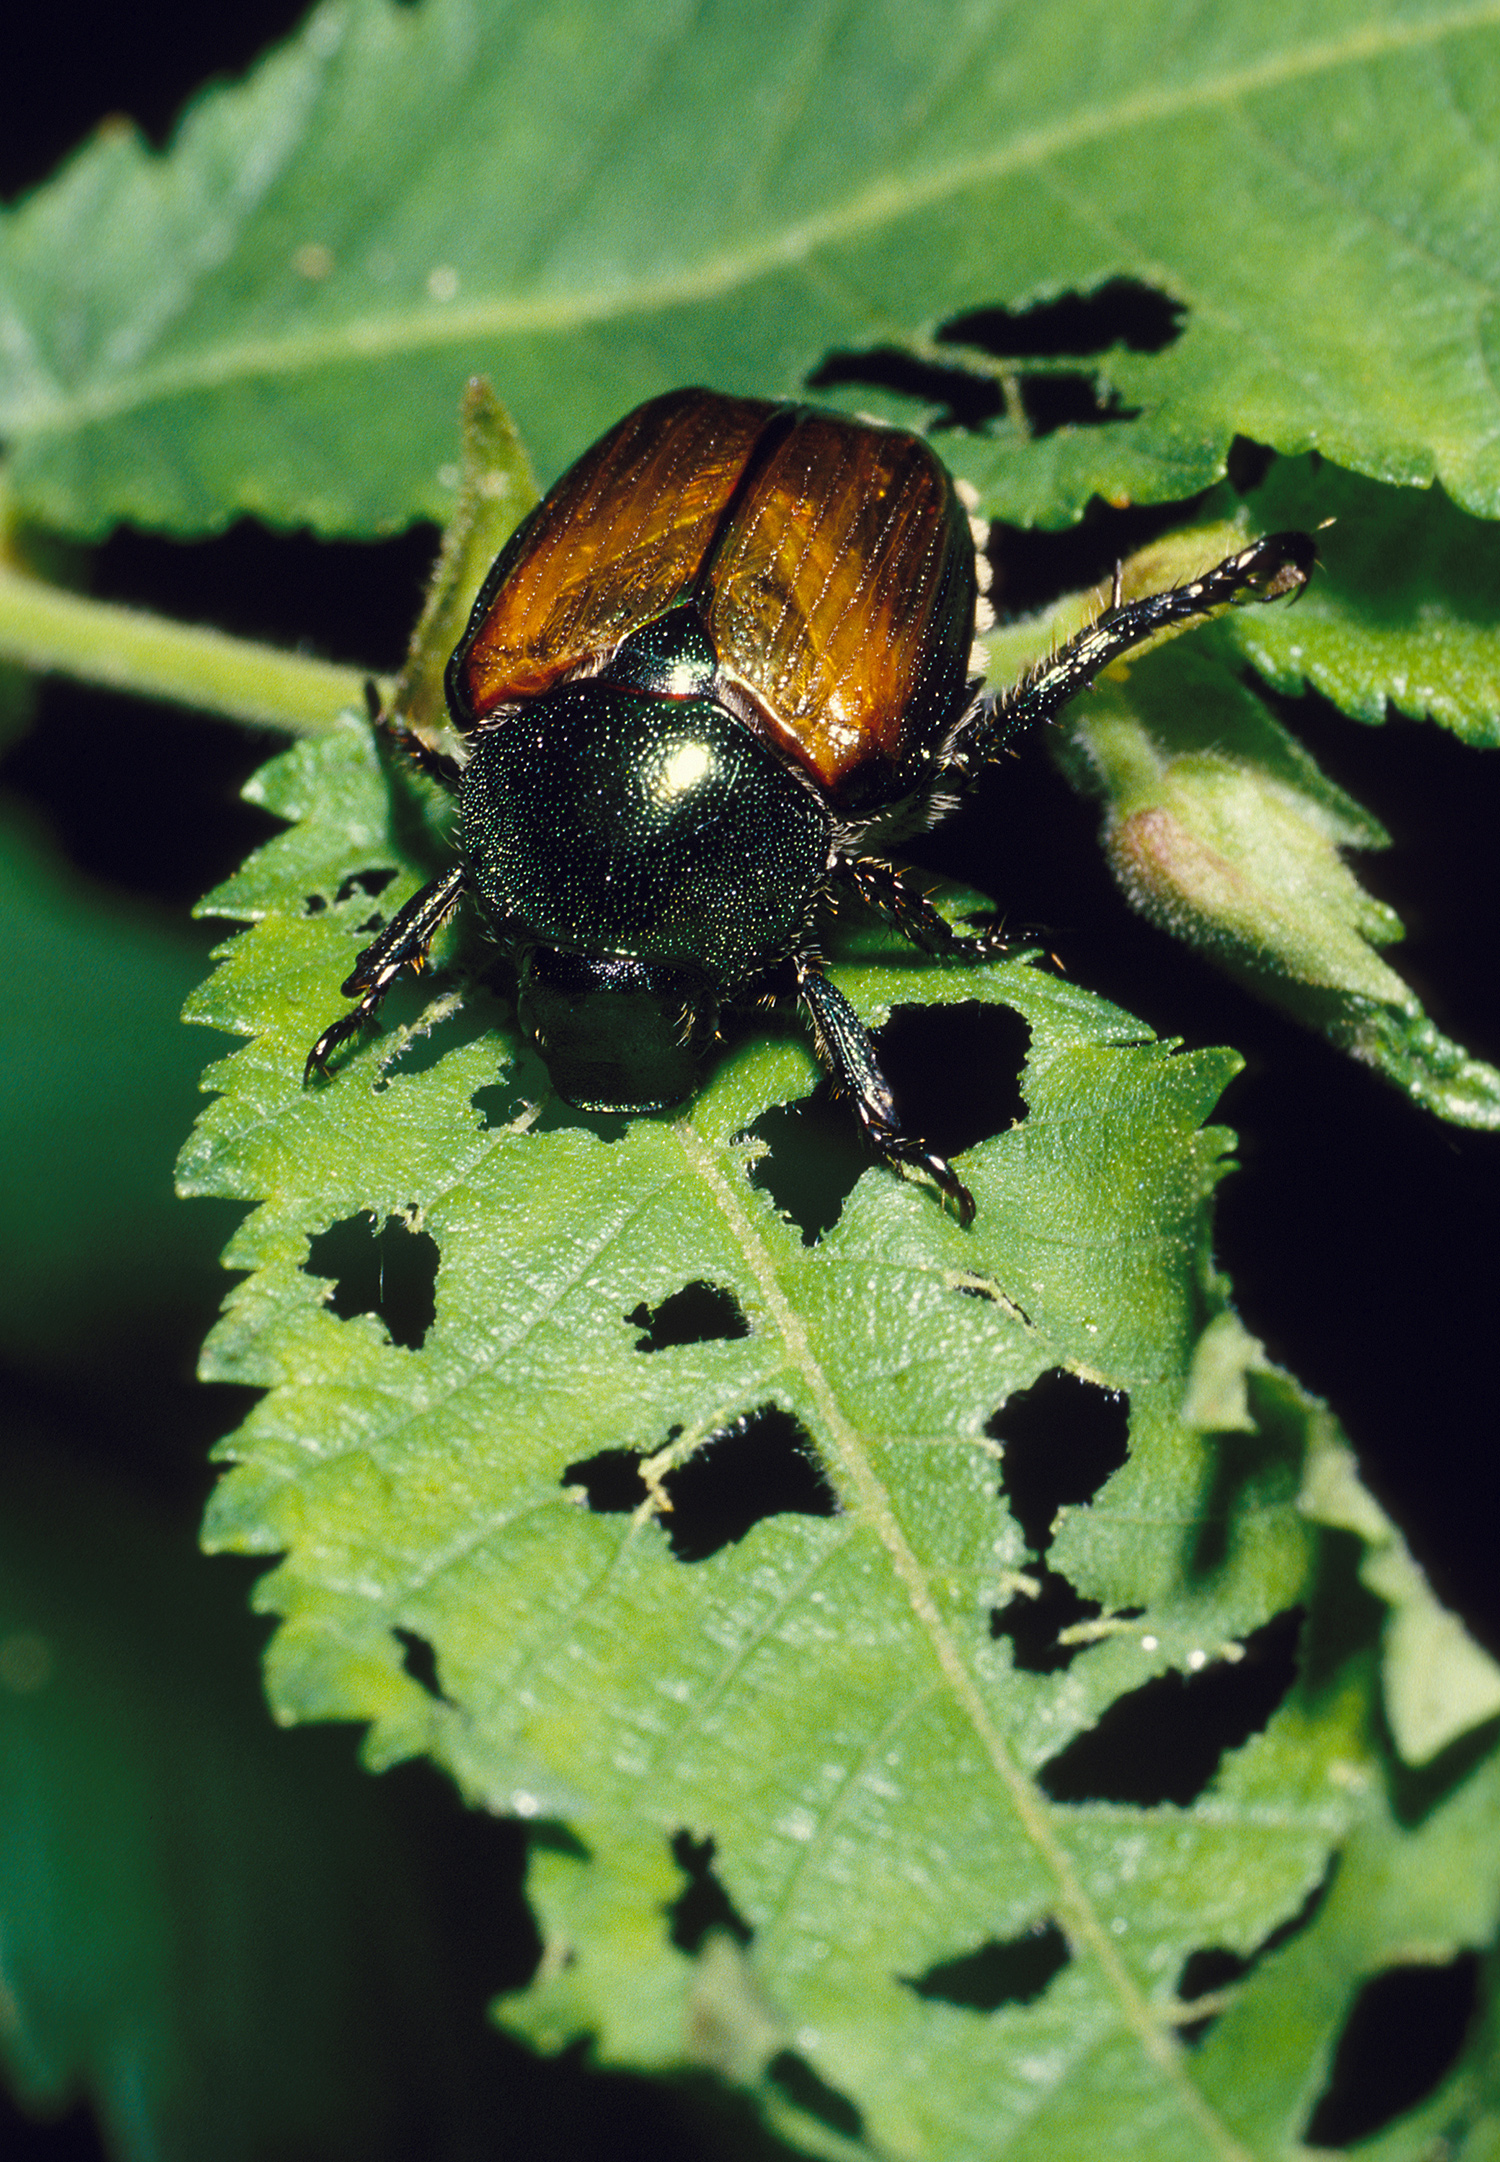 japanese_beetle_on_damaged_leaf.jpg